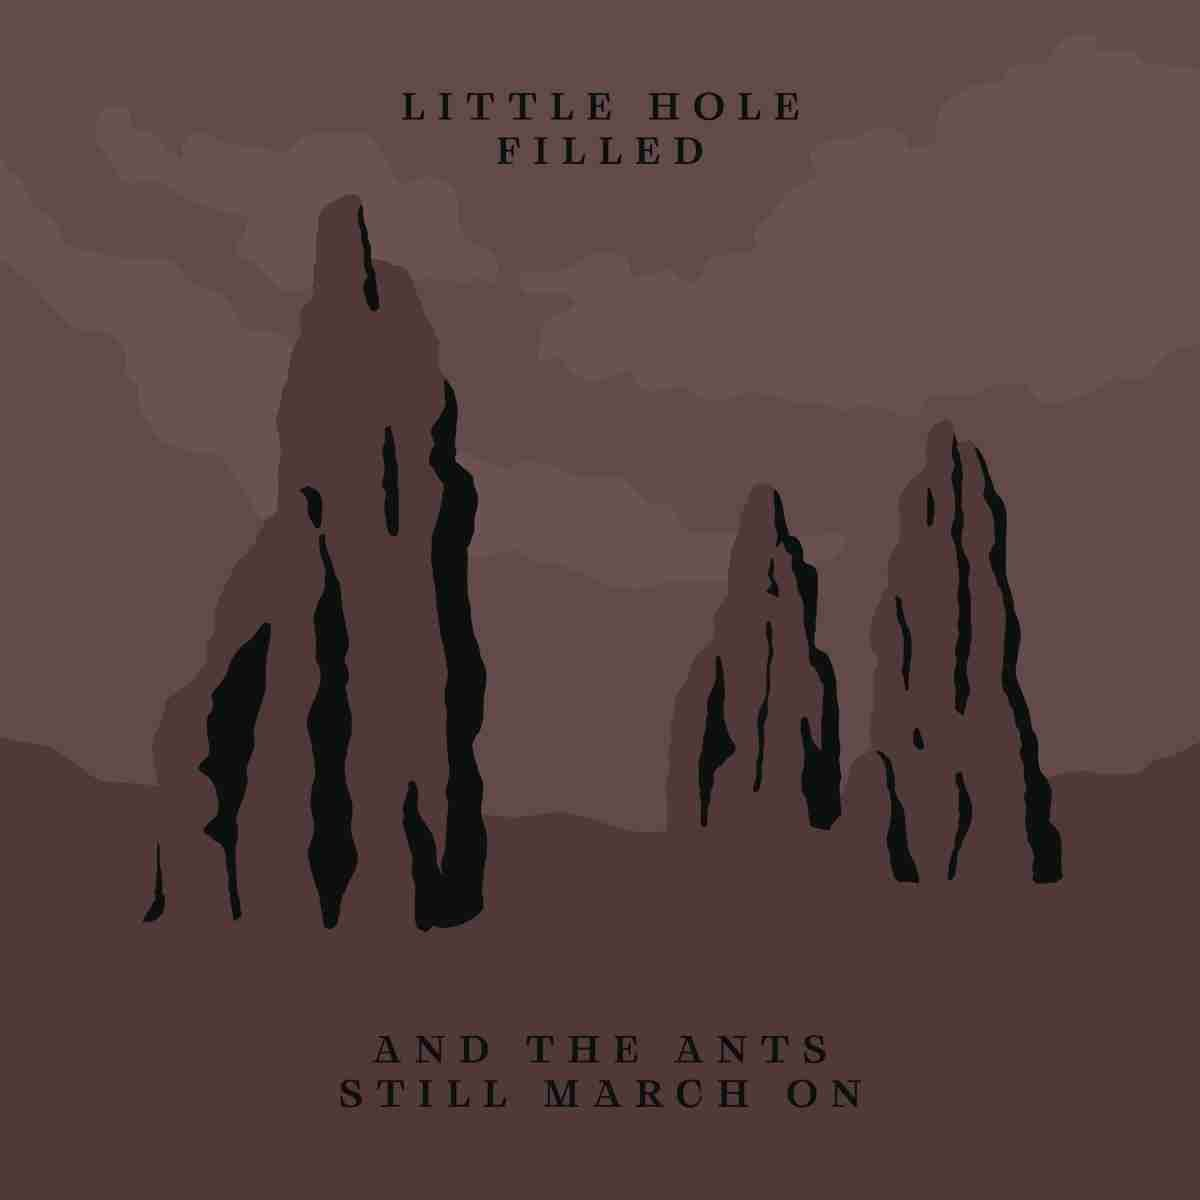 Little Hole Filled - And The Ants Still March On - album cover